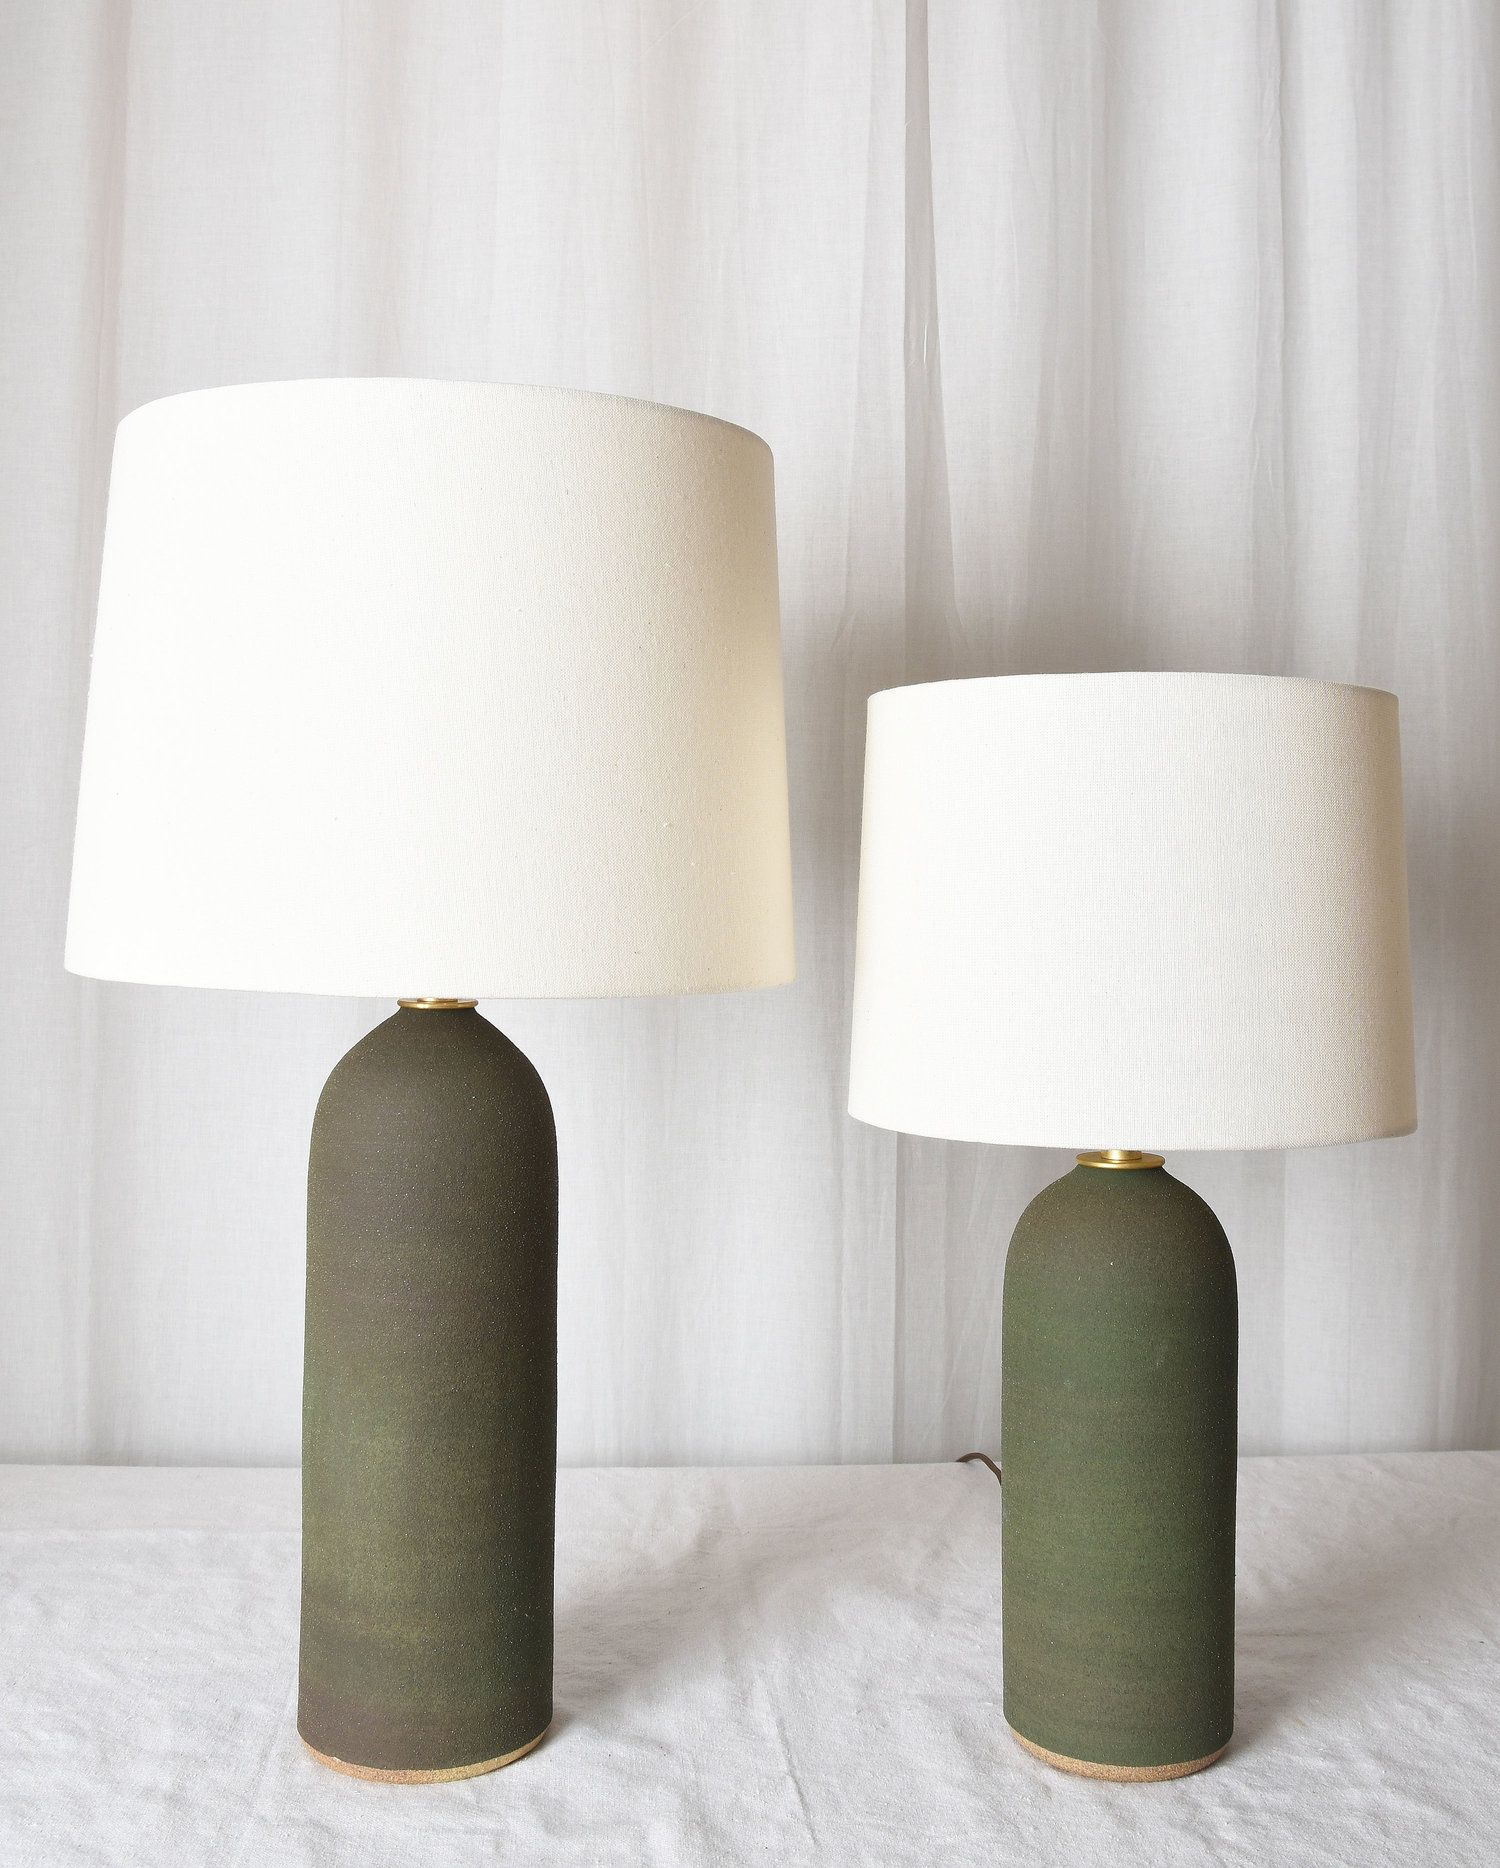 Matte Dark Olive Lamps Table Lamps For Bedroom Contemporary